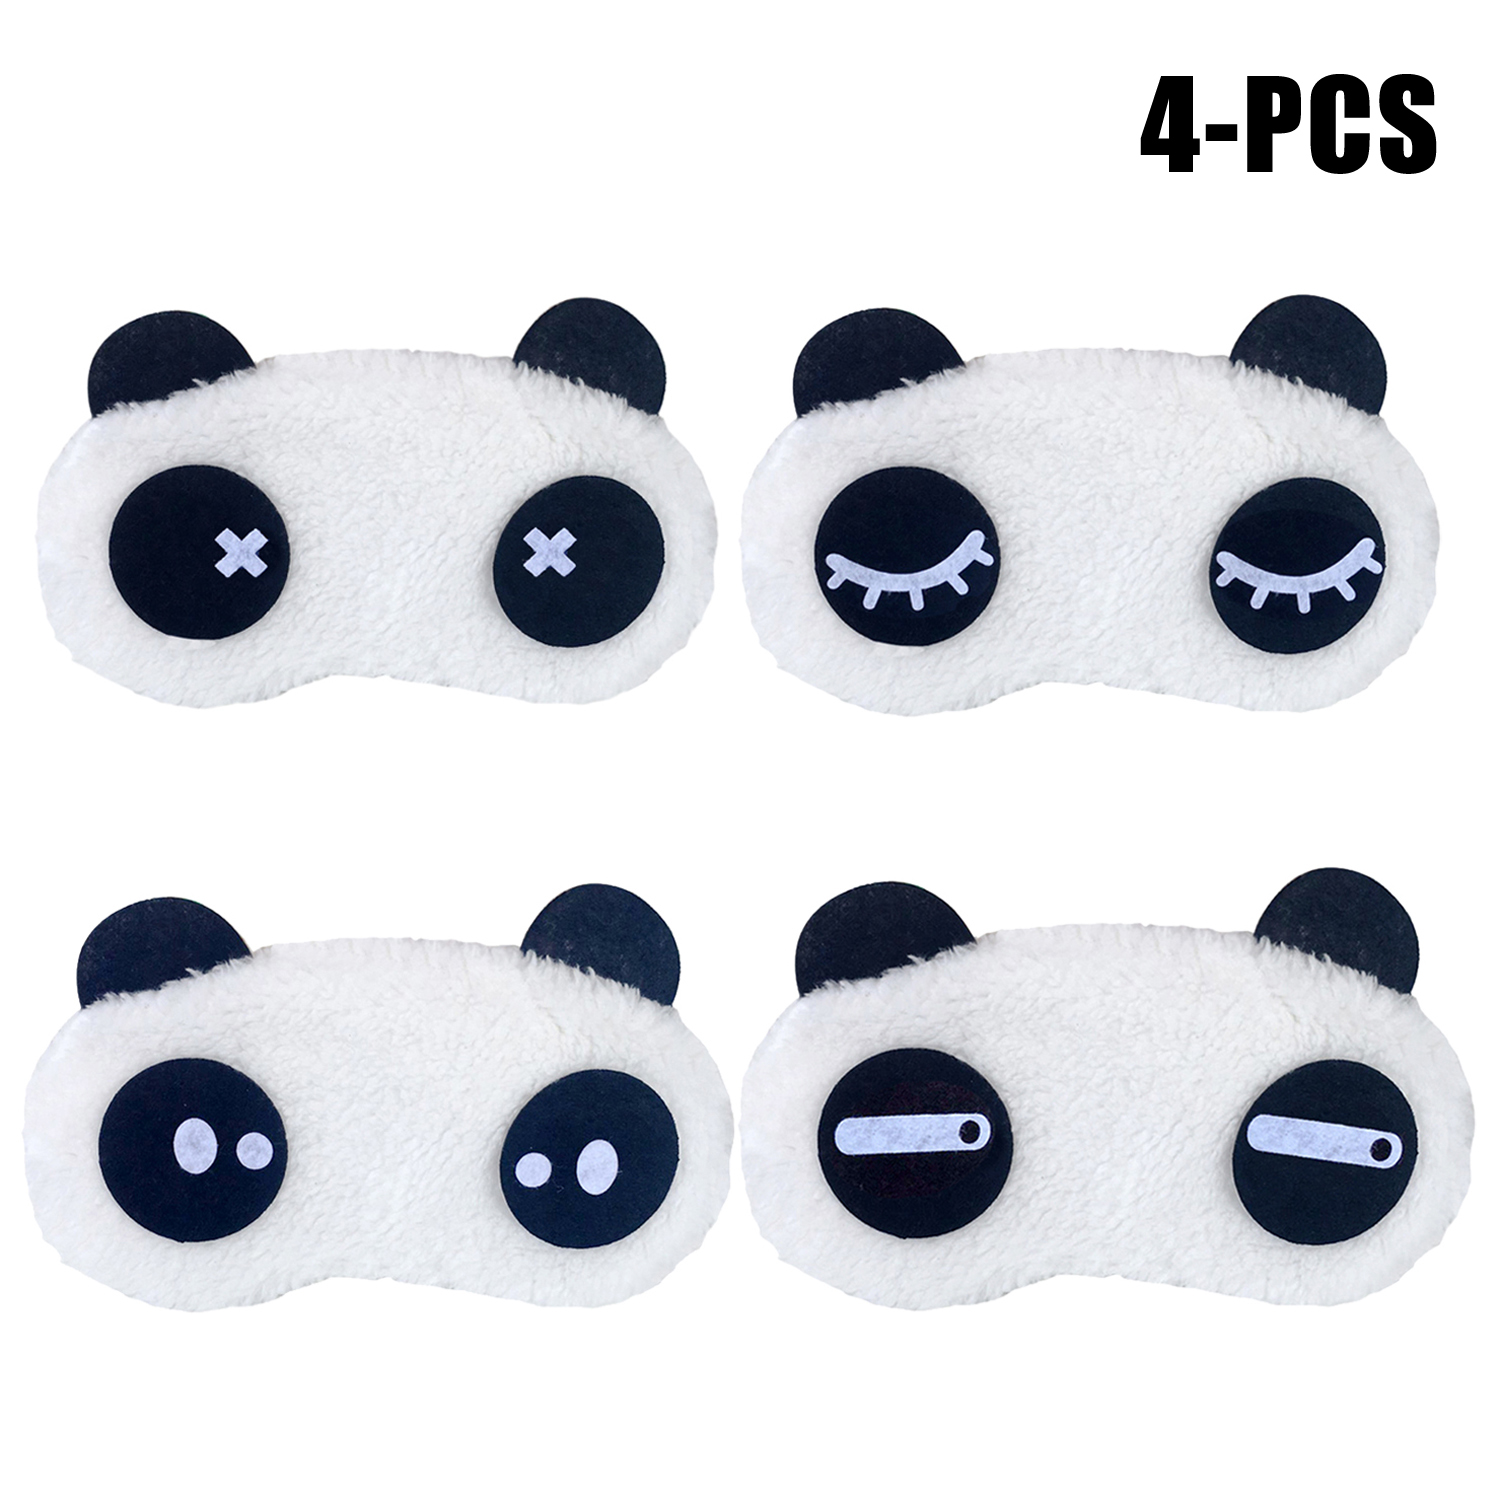 4Pcs Sleeping Masks set, Coxeer Cartoon Panda Sleeping Eye Masks Eye Sleep Covers Sleeping Eyeshades for Women Men Teen Boys Girls,Multicolor